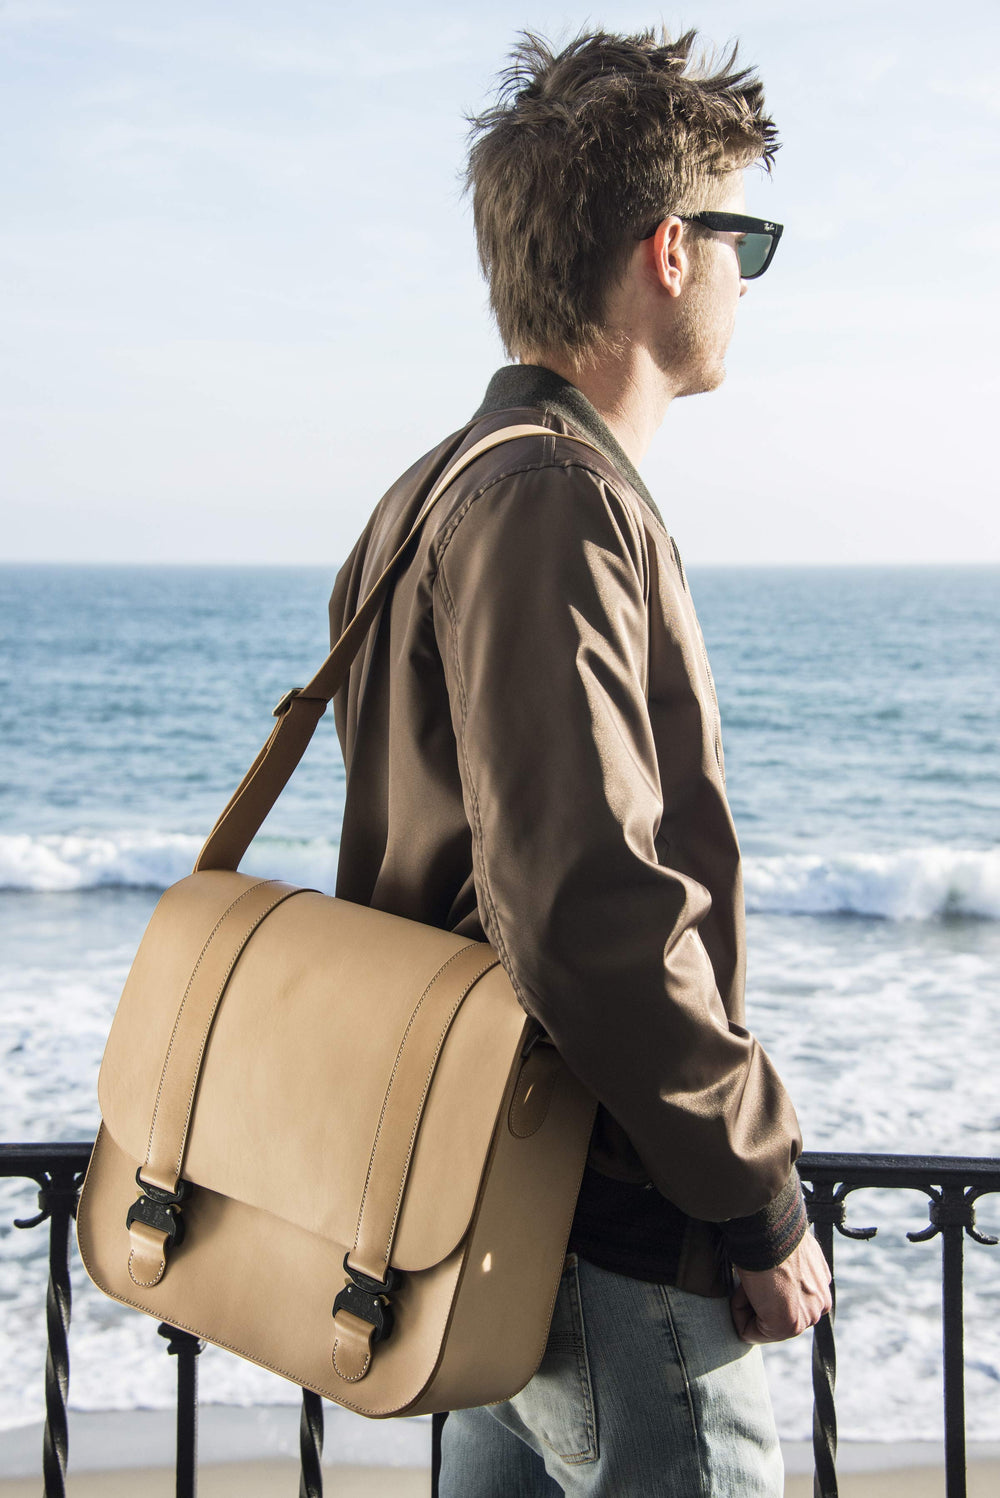 Ben Hogestyn Malibu Messenger Bag Built With Louis Vuitton Veg Tan Hand Sewn Beach